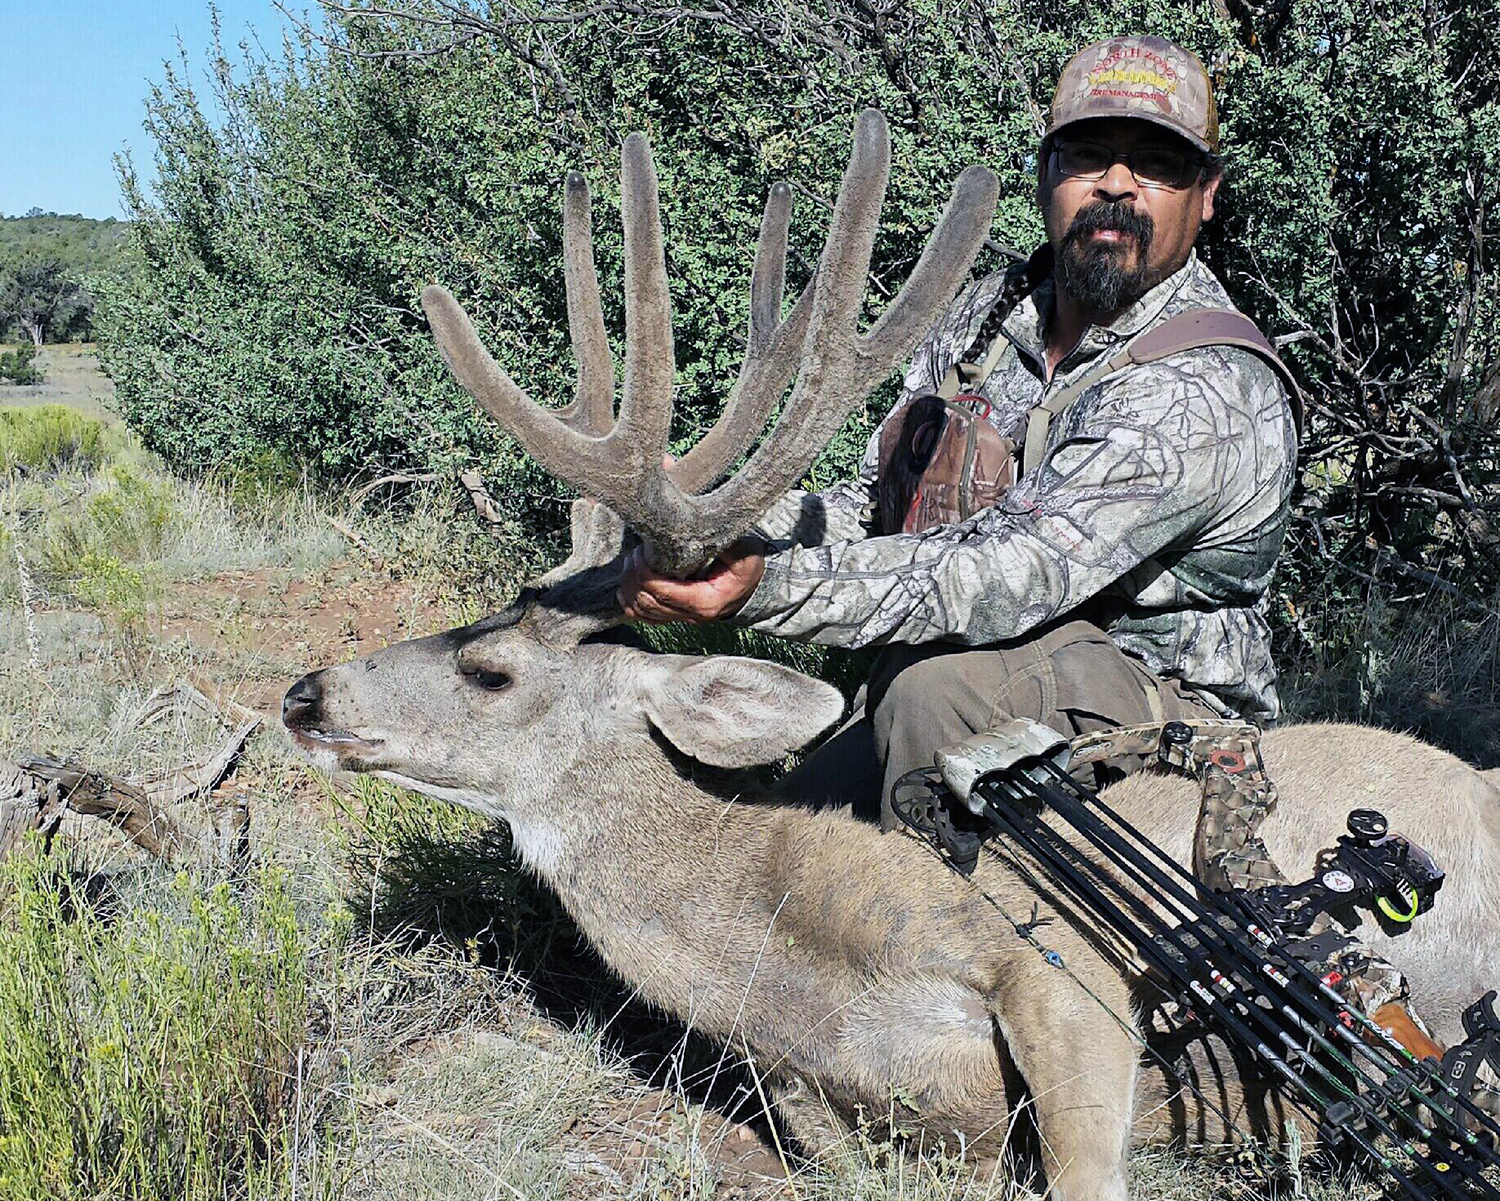 Archery hunter with his bow and arrows and recent Elk kill on ground in the forest